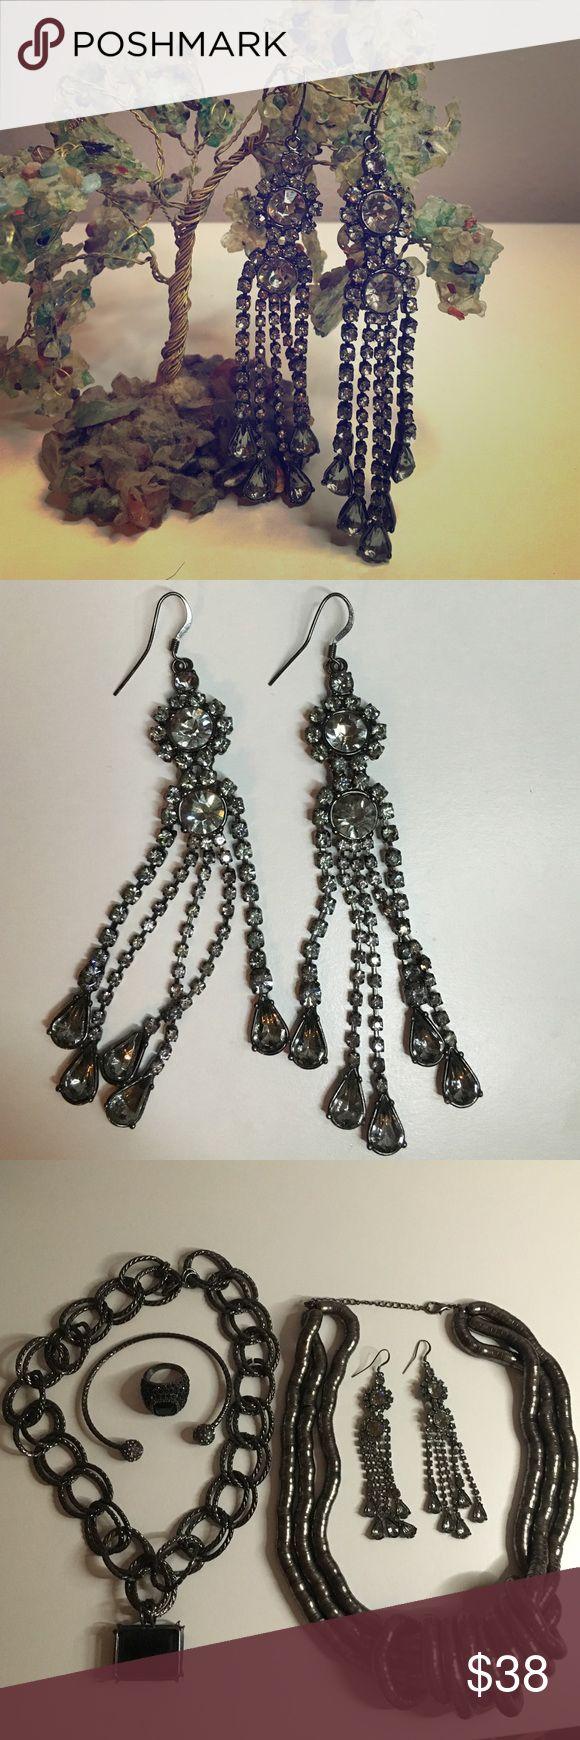 Dramatic Dangles: BCBGMAXAZRIA Look glamorous in these head turning drop earrings for any party or cocktail event. These earrings sport a shiny gunmetal finish that will sparkle in the darkest of venues. Earrings hang about 4 inches long BCBGMaxAzria Jewelry Earrings